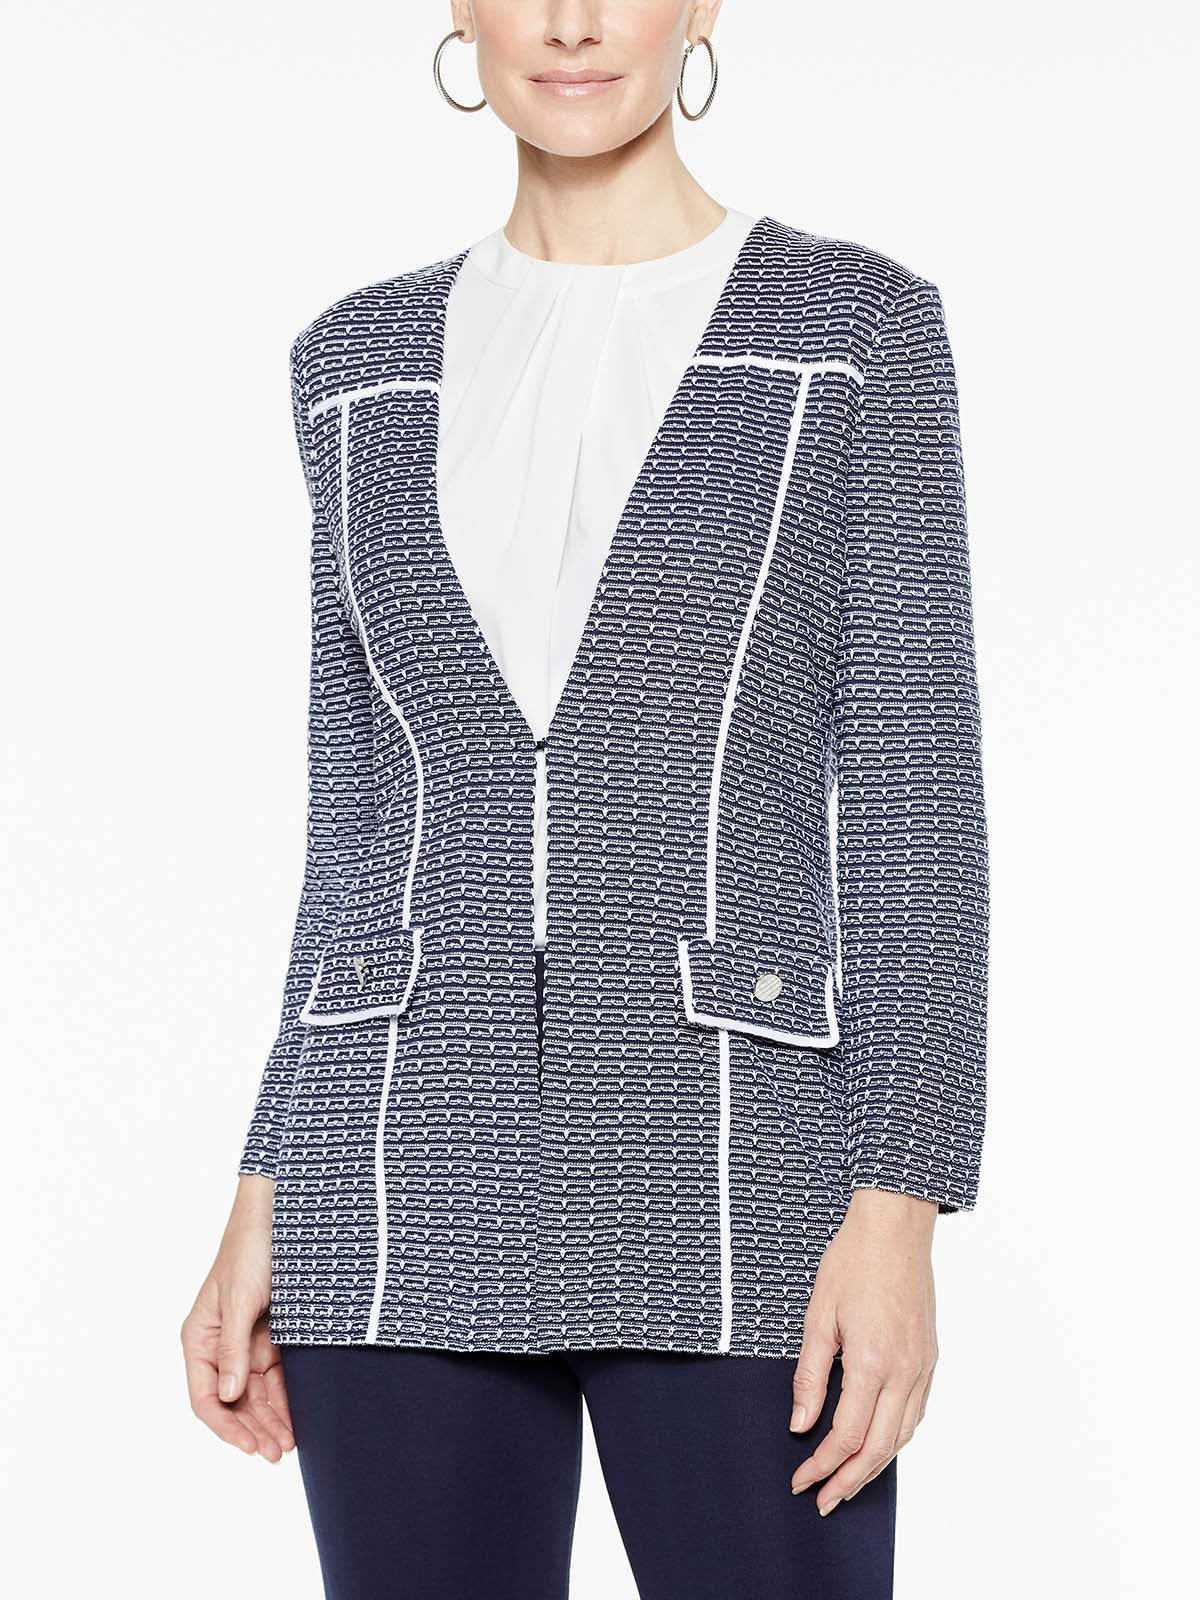 Spectator Trimmed Jacket Color Indigo/White